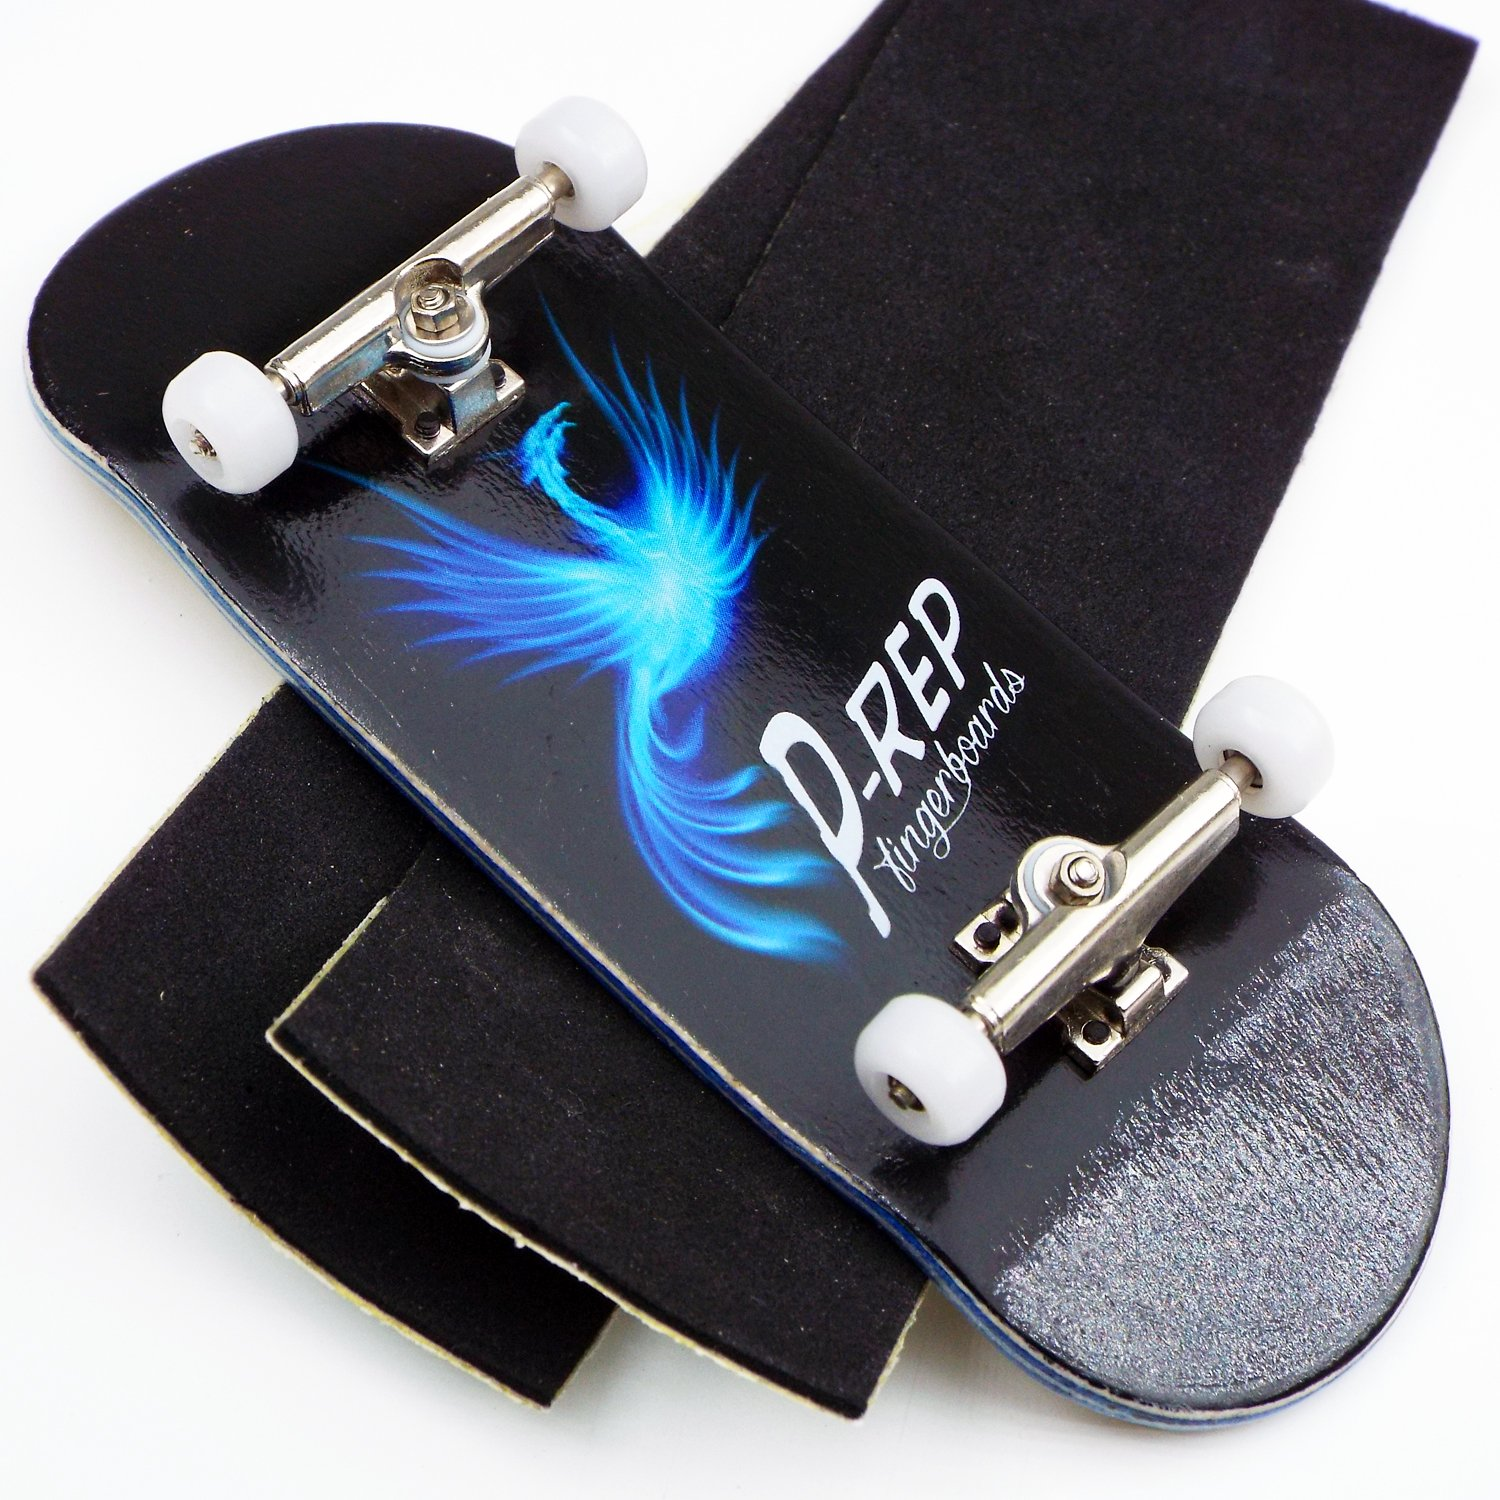 P-REP TUNED Complete Wooden Fingerboard 34mm x 100mm - Pheonix by Peoples Republic